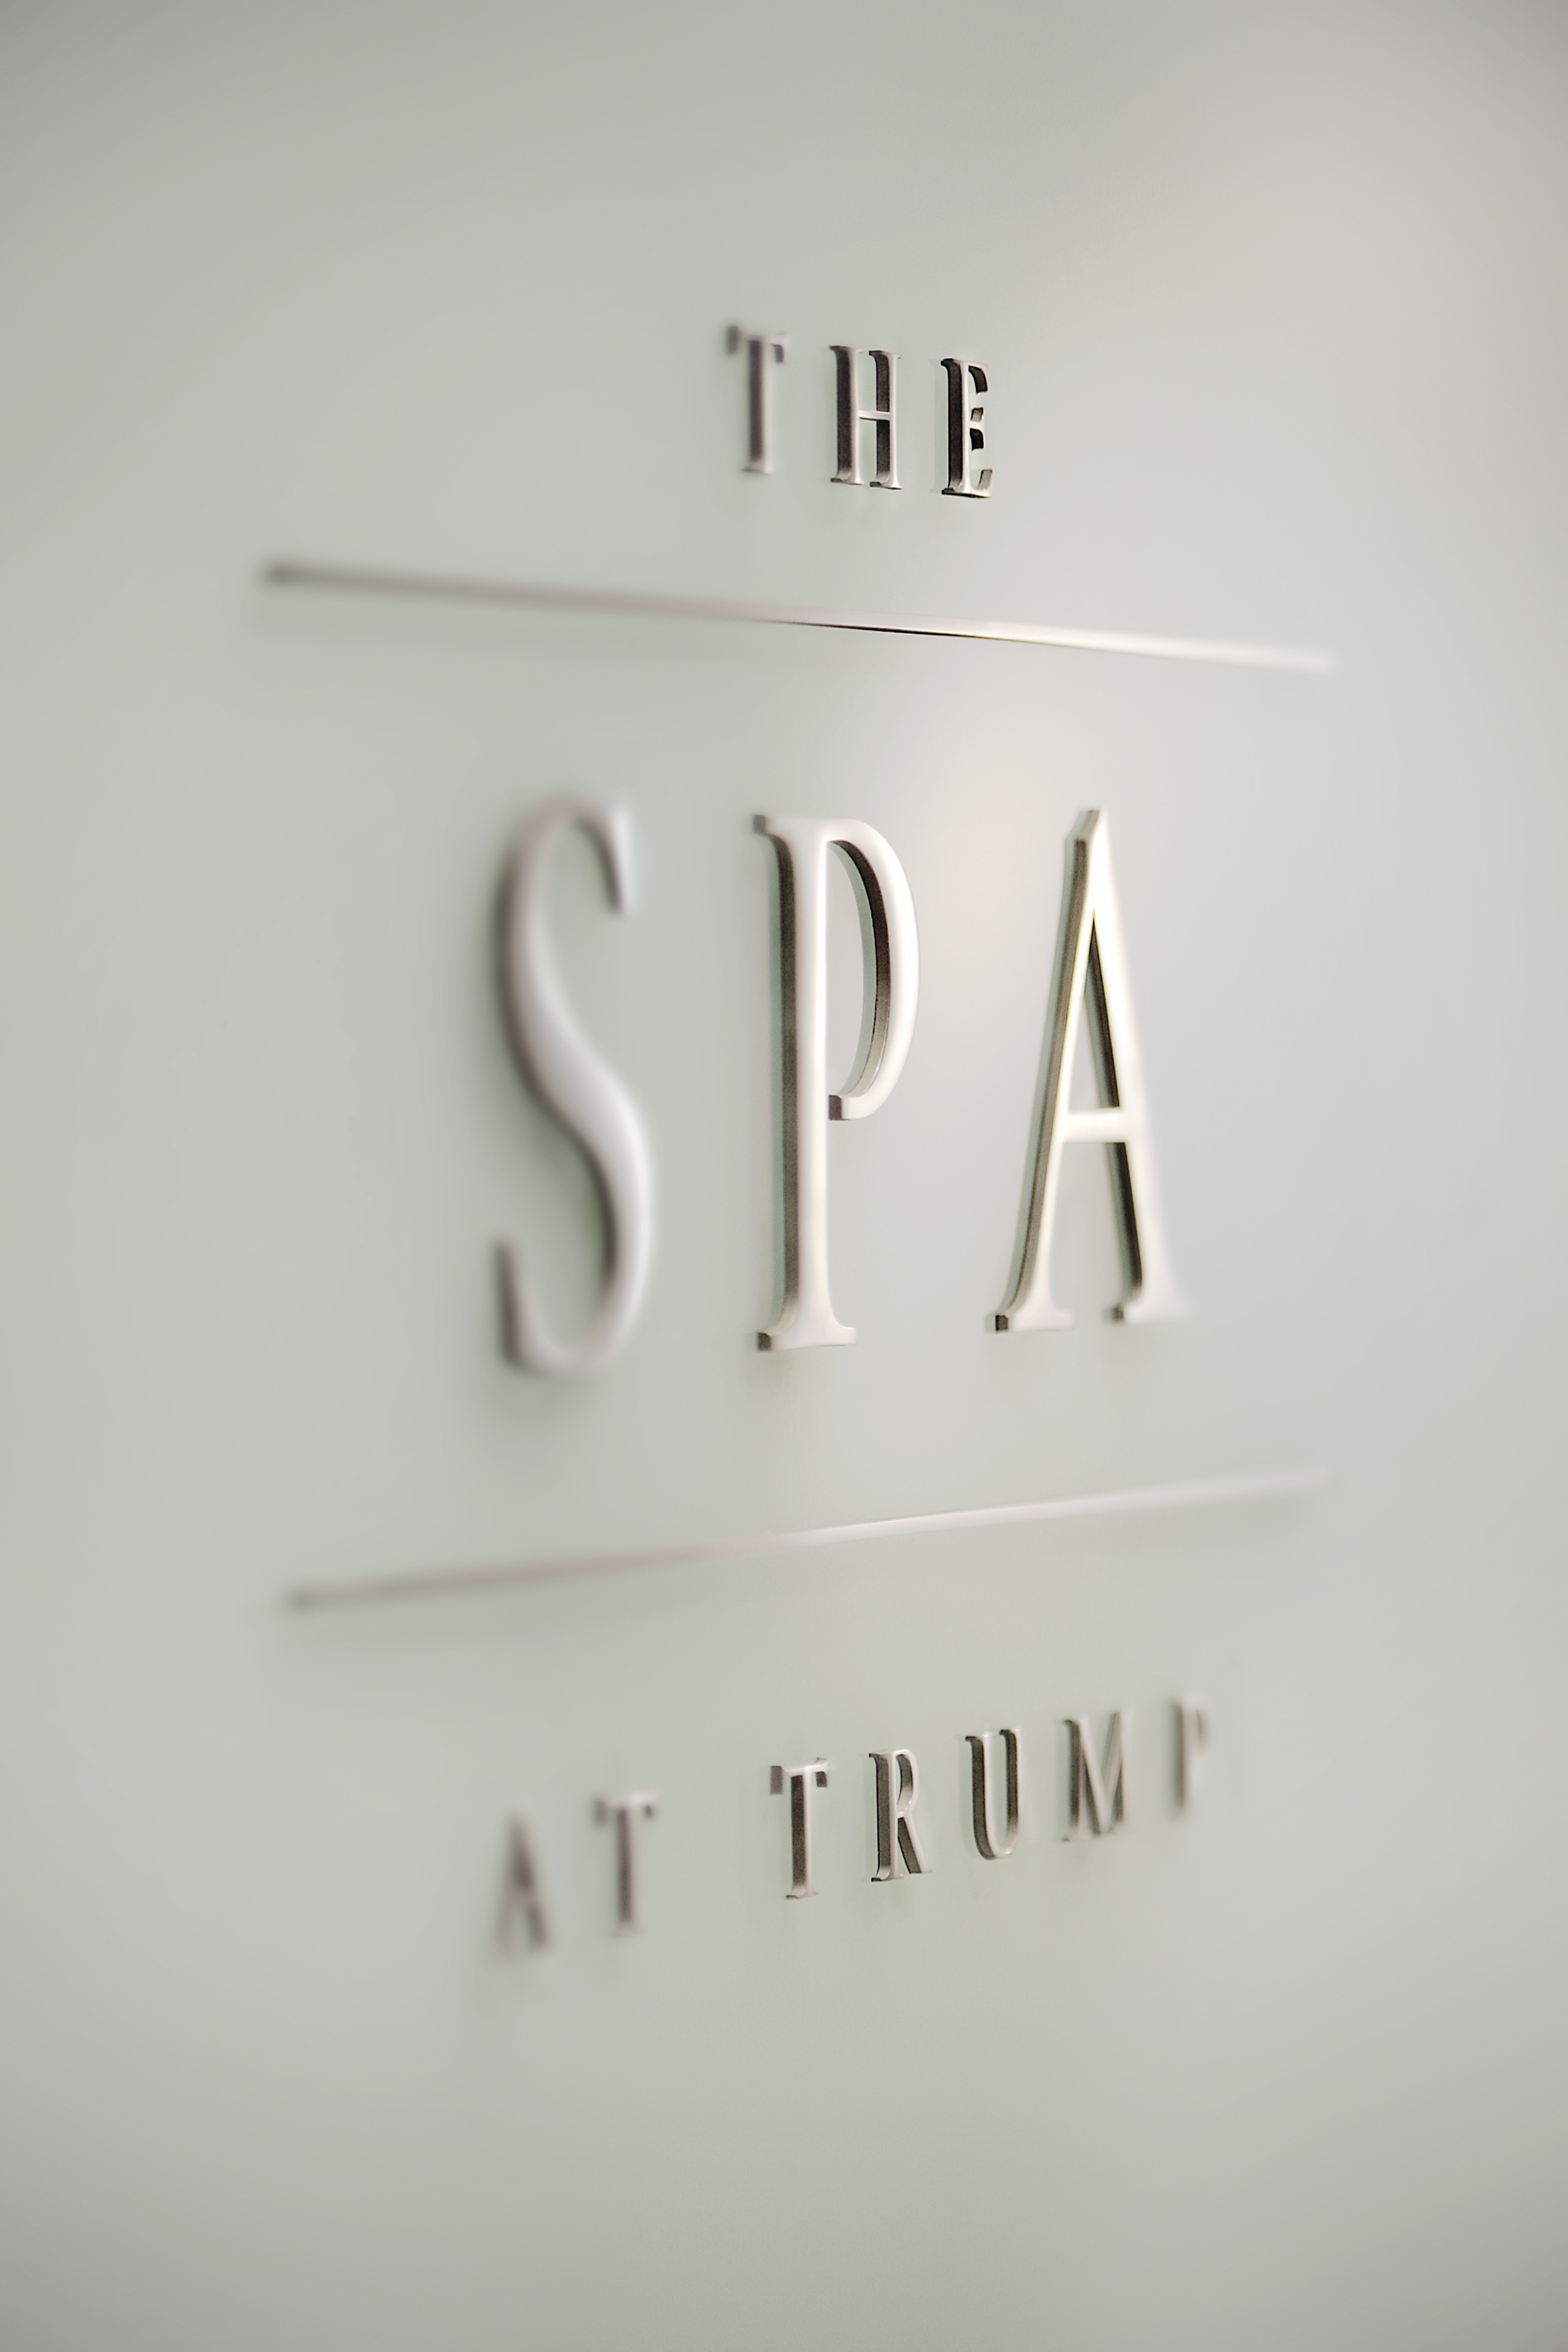 The Spa at Trump Chicago, Now with Natura Bissé